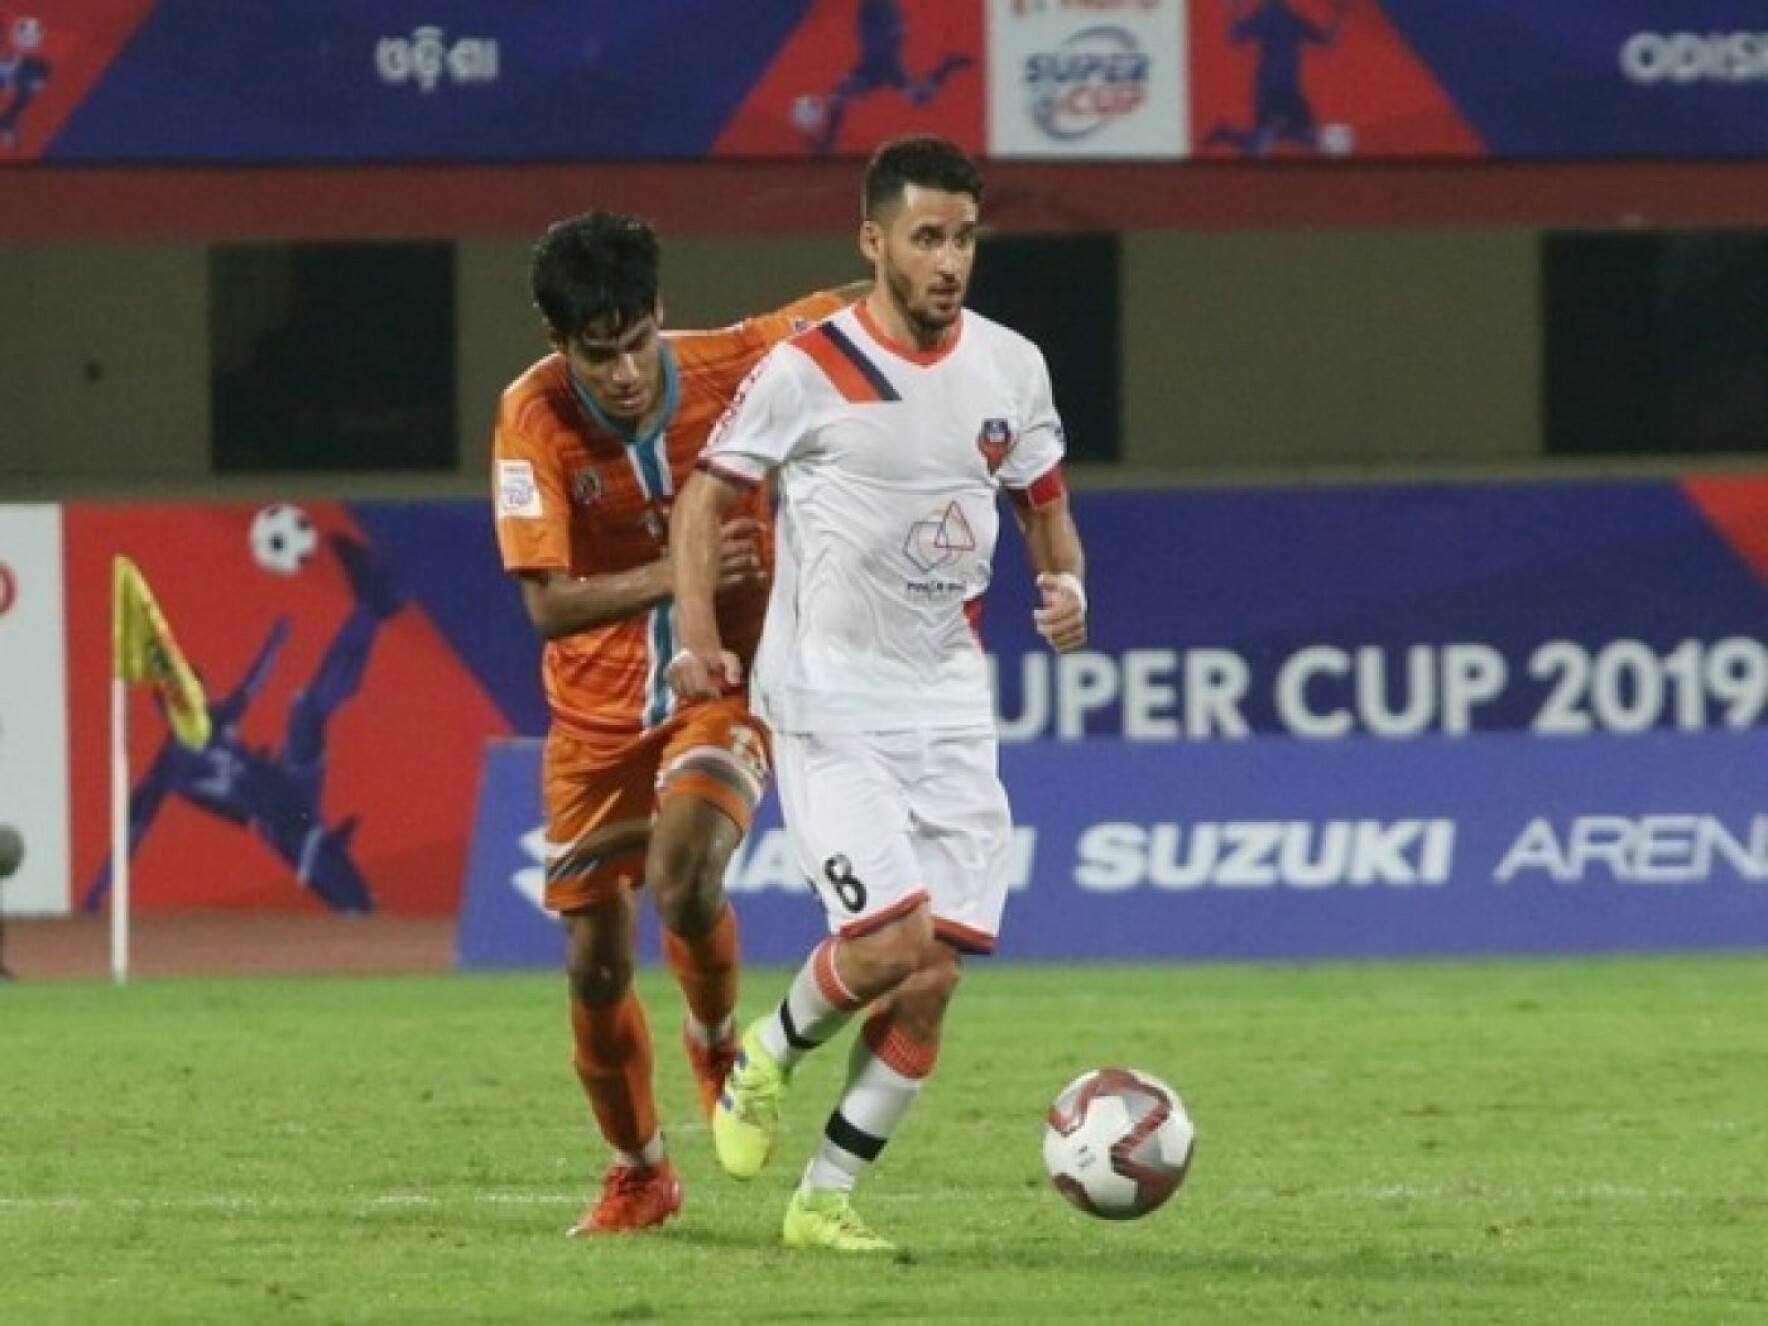 Super Cup 2019: FC Goa crush Chennai City on their way to final